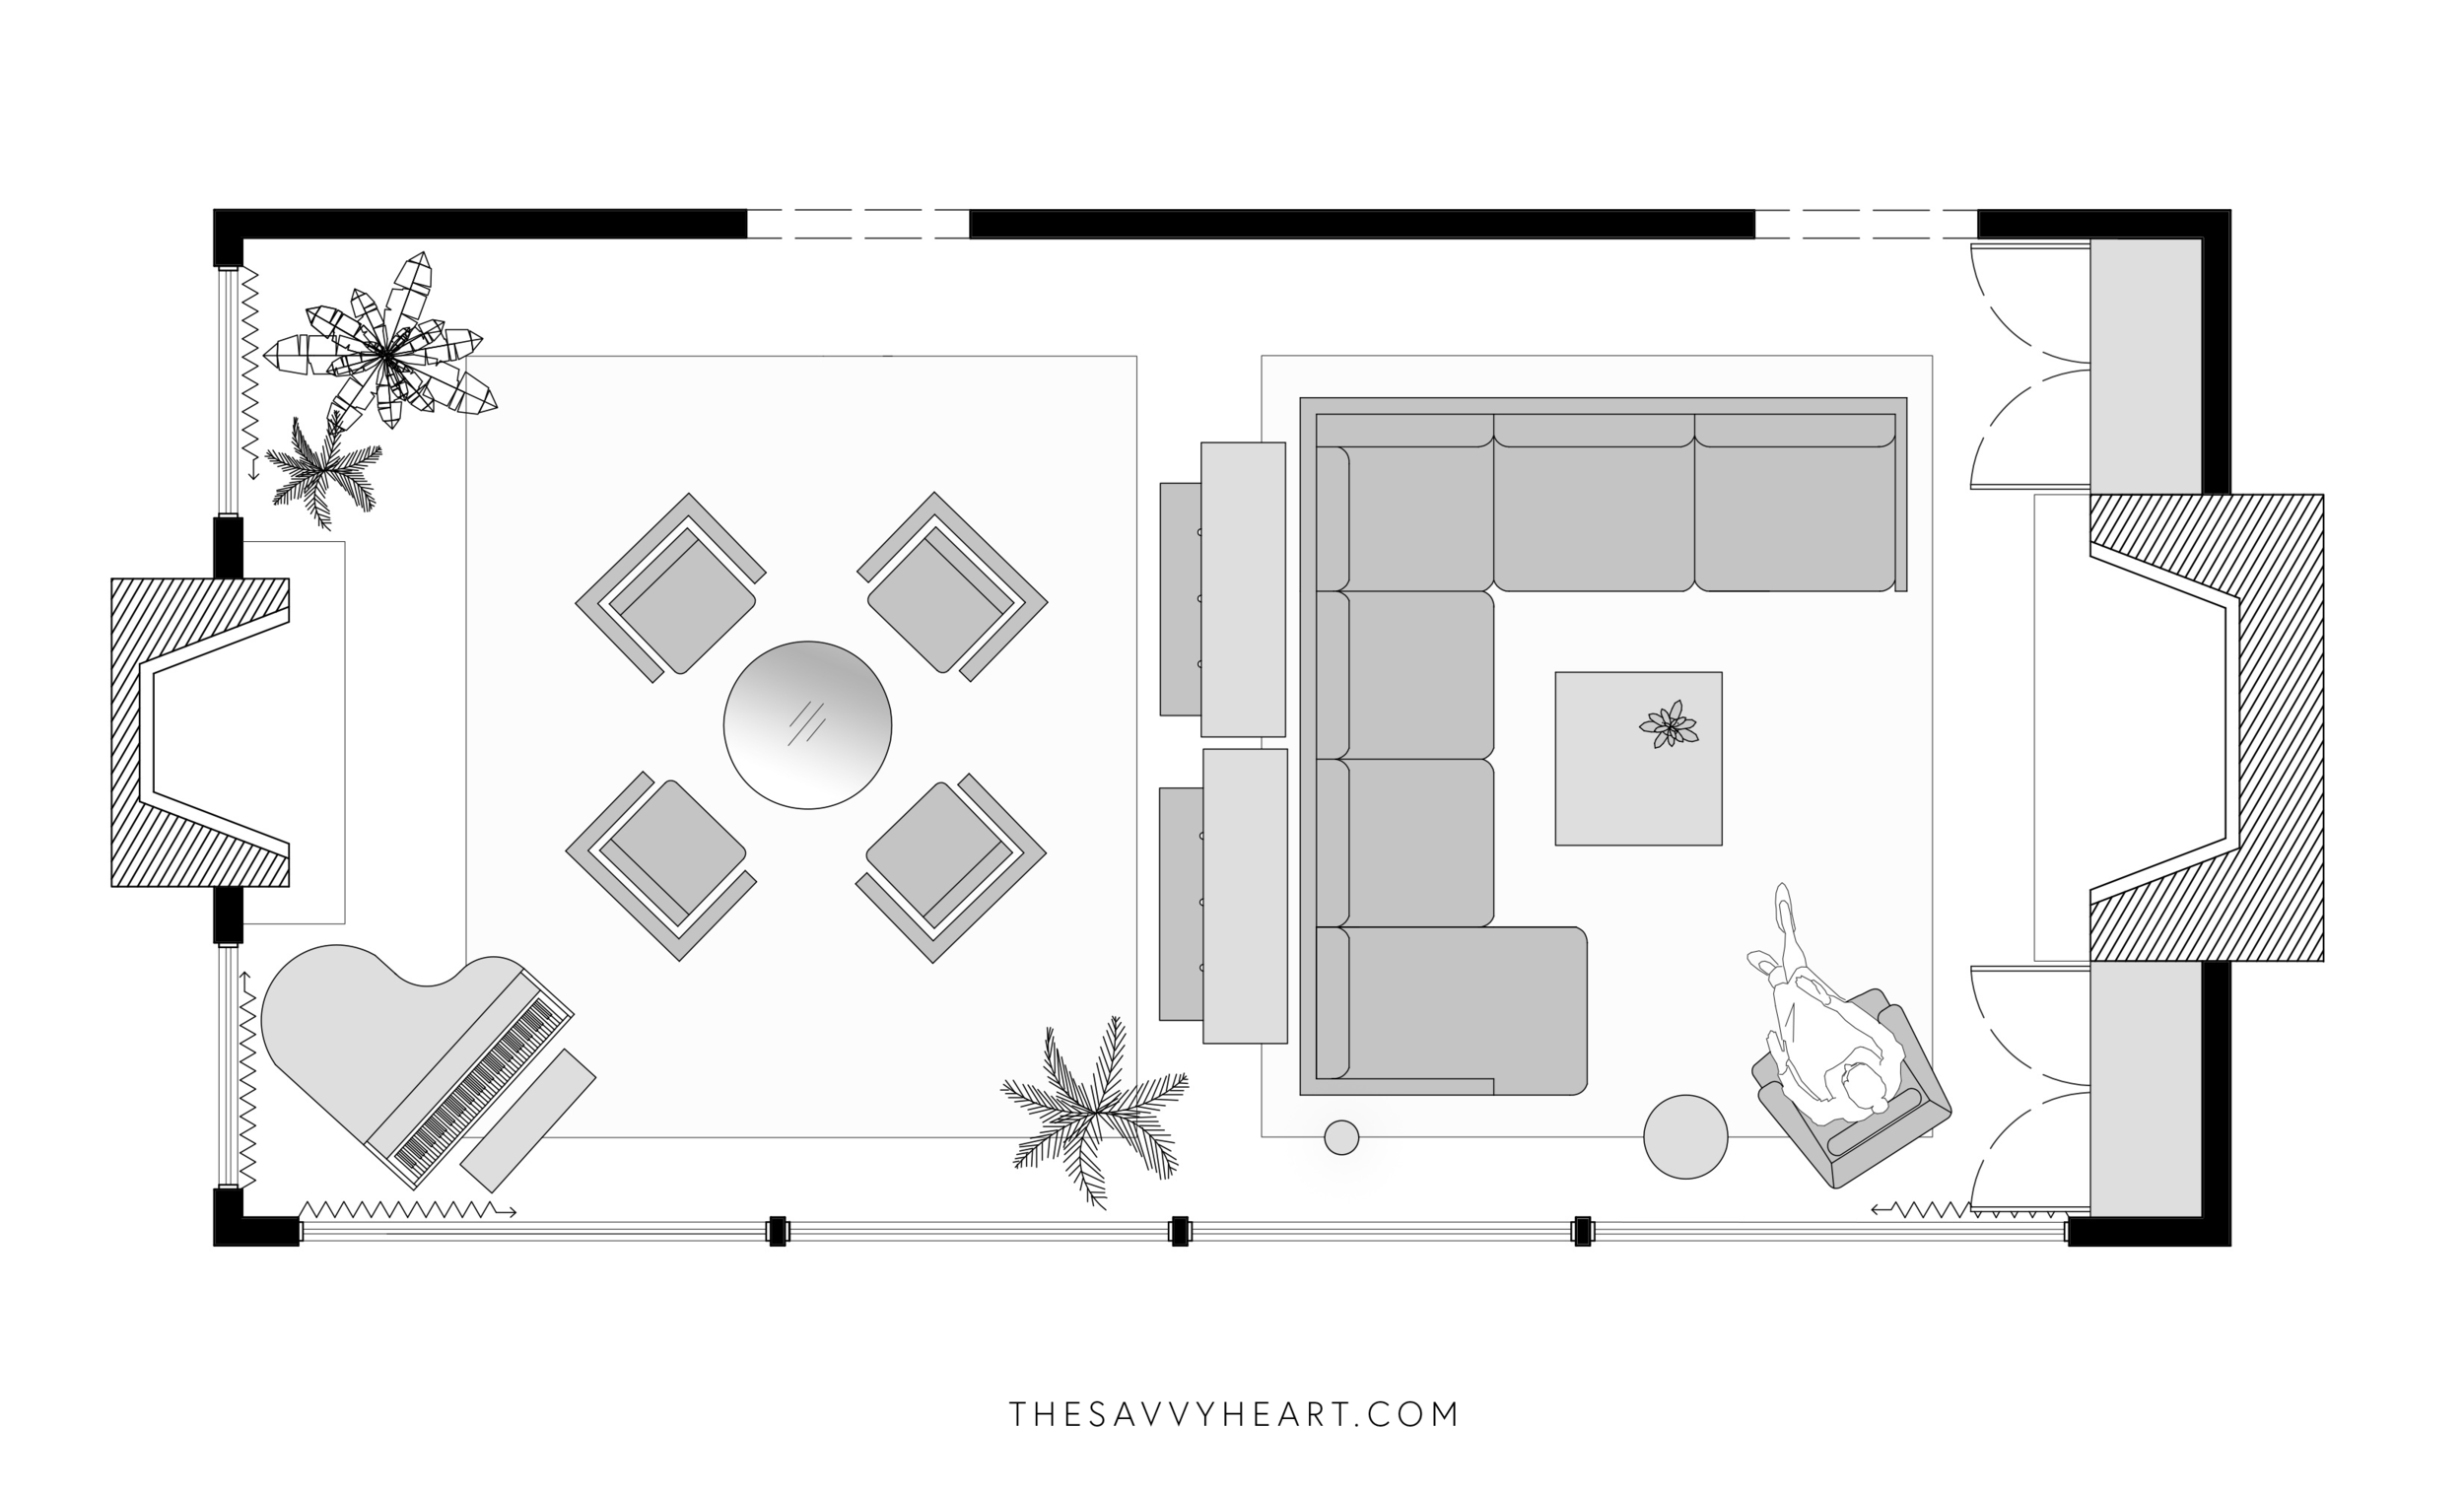 5 Furniture Layout Ideas for a Large Living Room, with Floor Plans